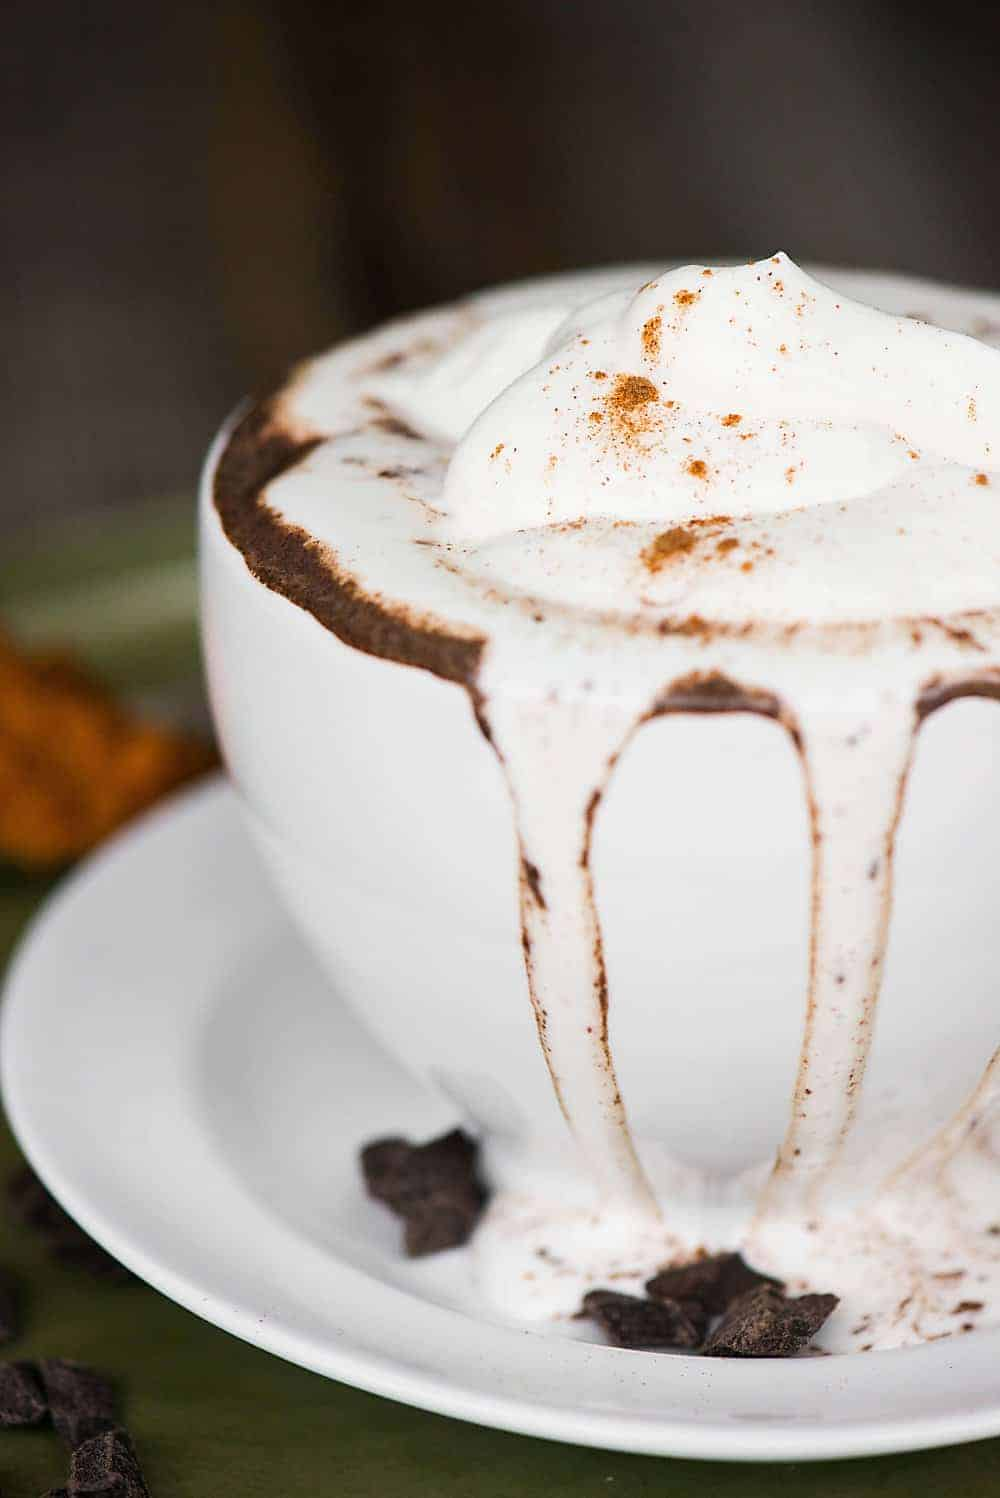 Pumpkin Spice Hot Chocolate with real pumpkin puree is a classic warm fall drink. Homemade hot chocolate .